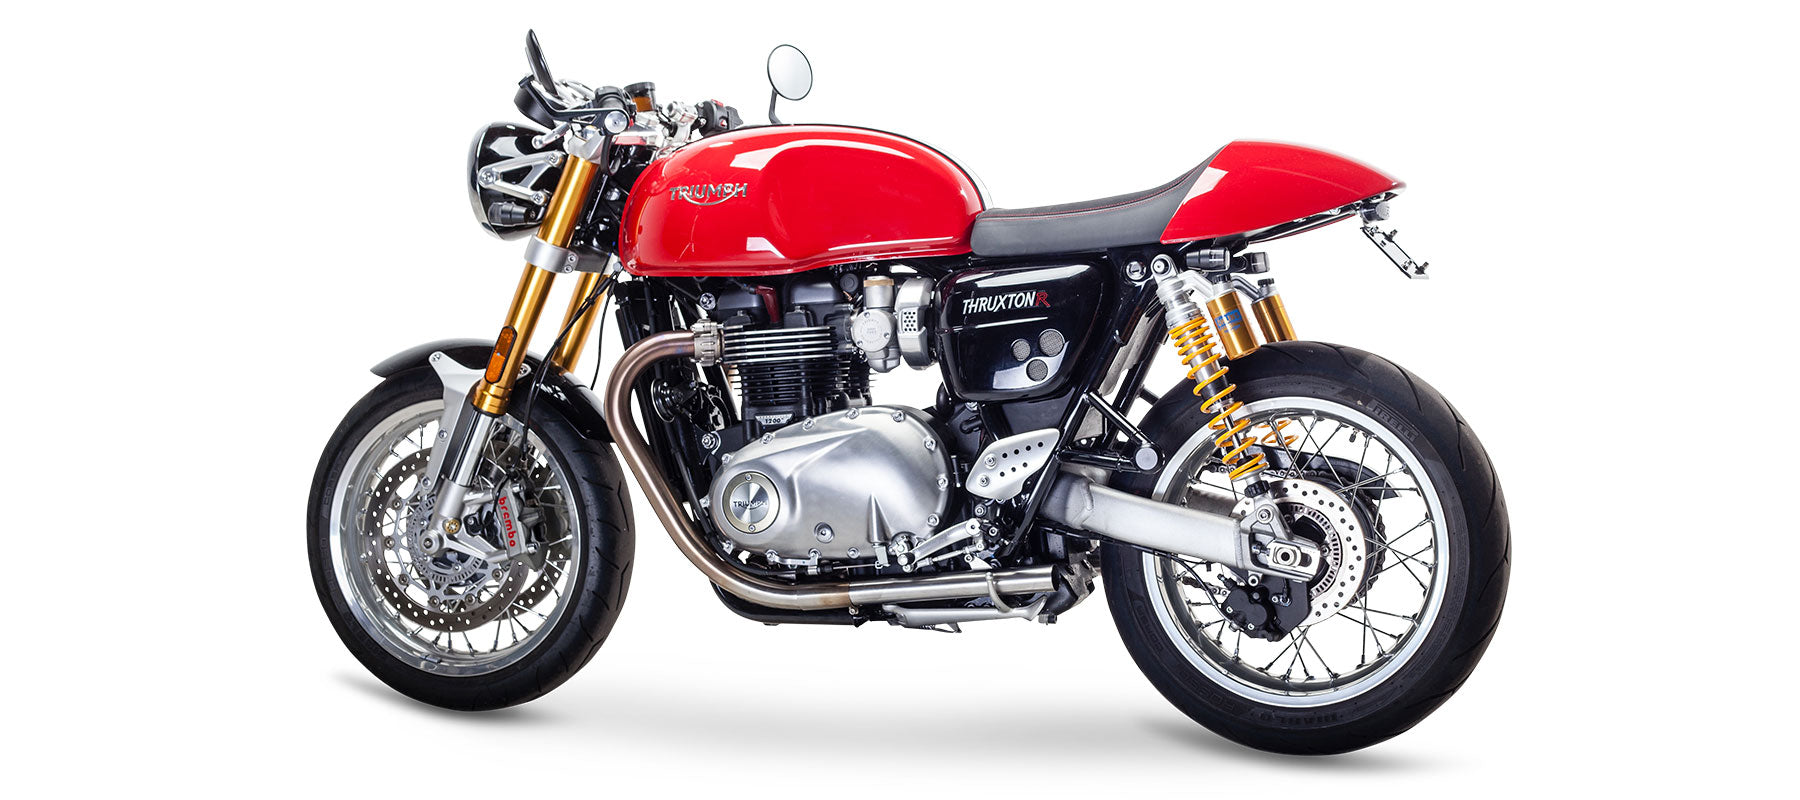 British Customs Straight Pipe Performance Tips for Thruxton R